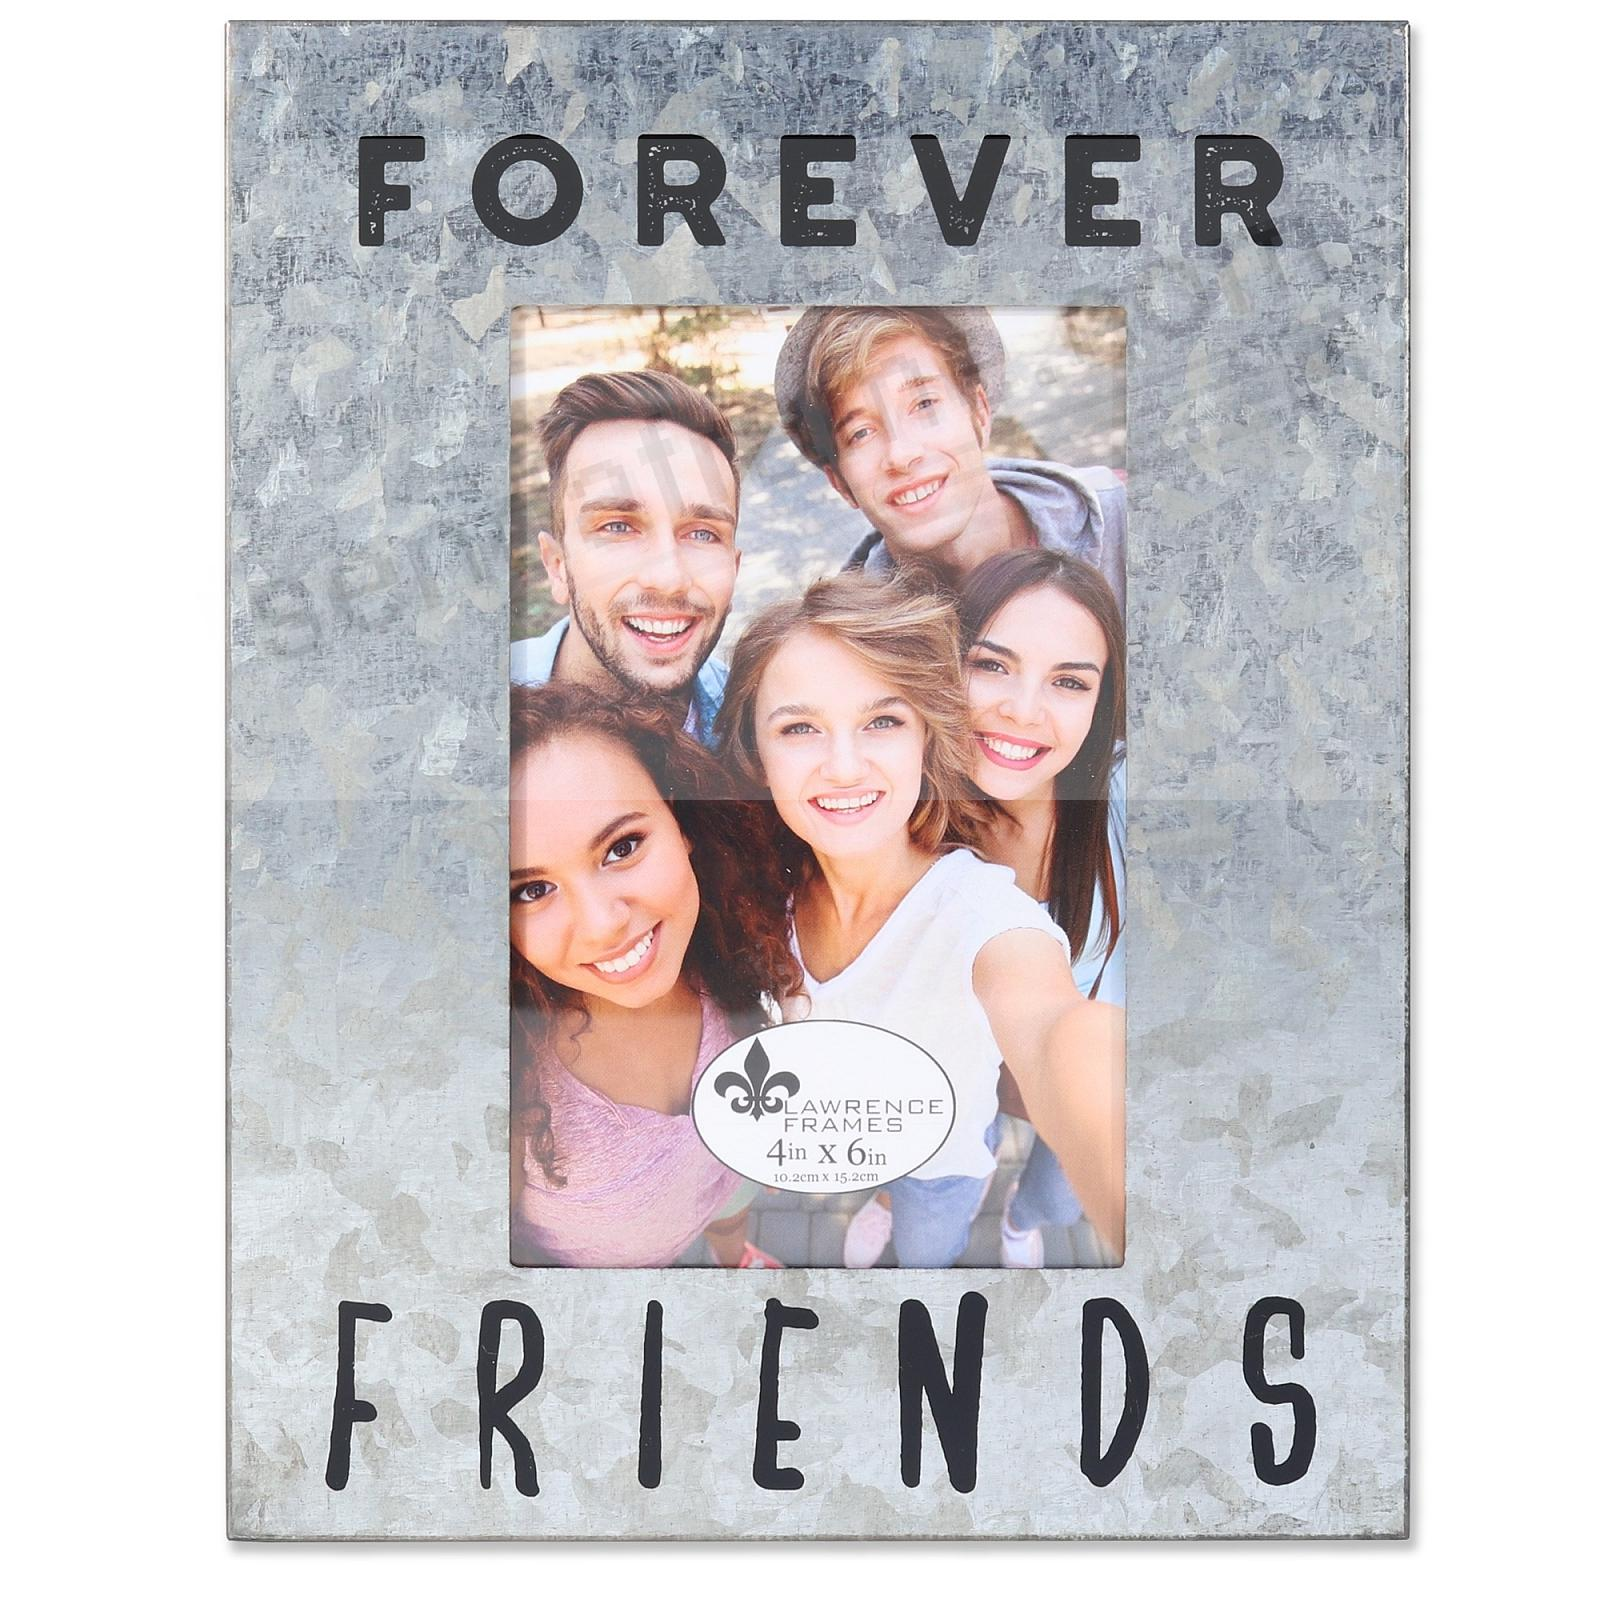 FOREVER FRIENDS by Lawrence®